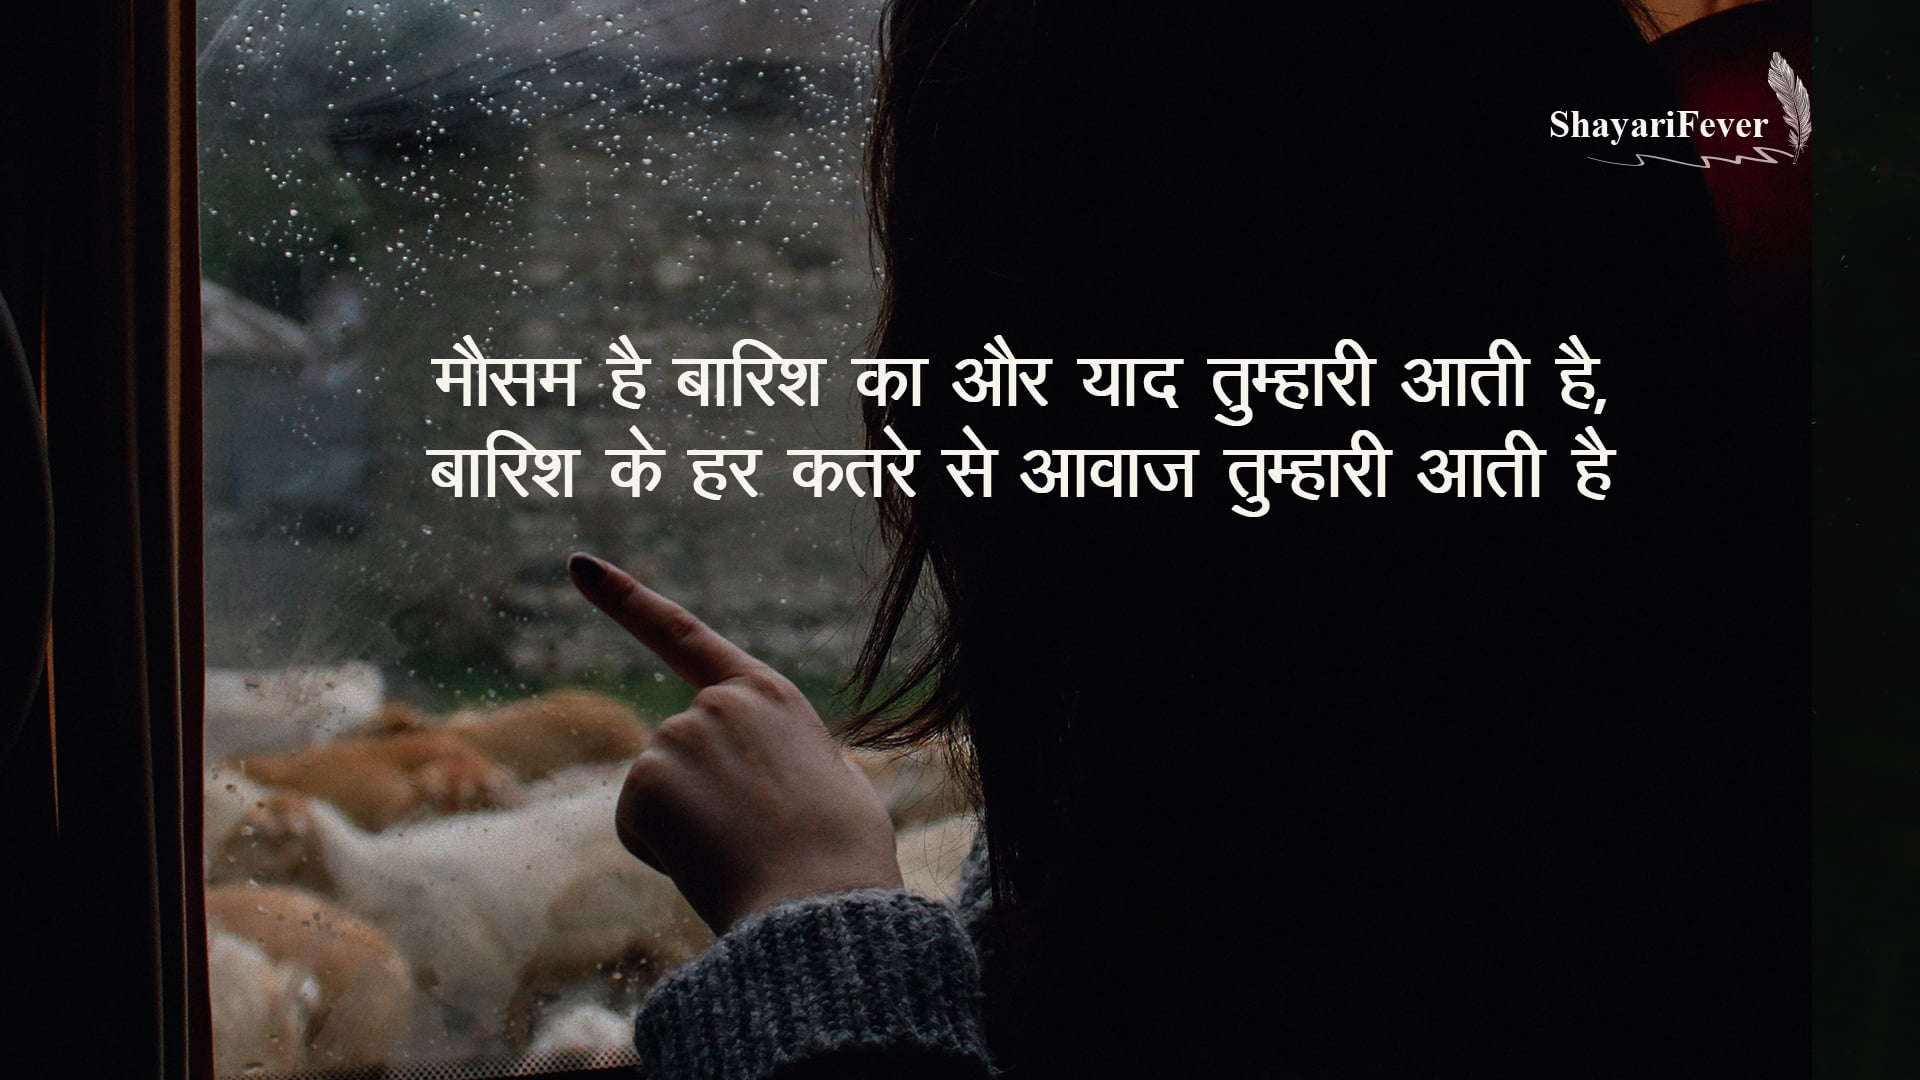 Barish Shayari For Girlfriend